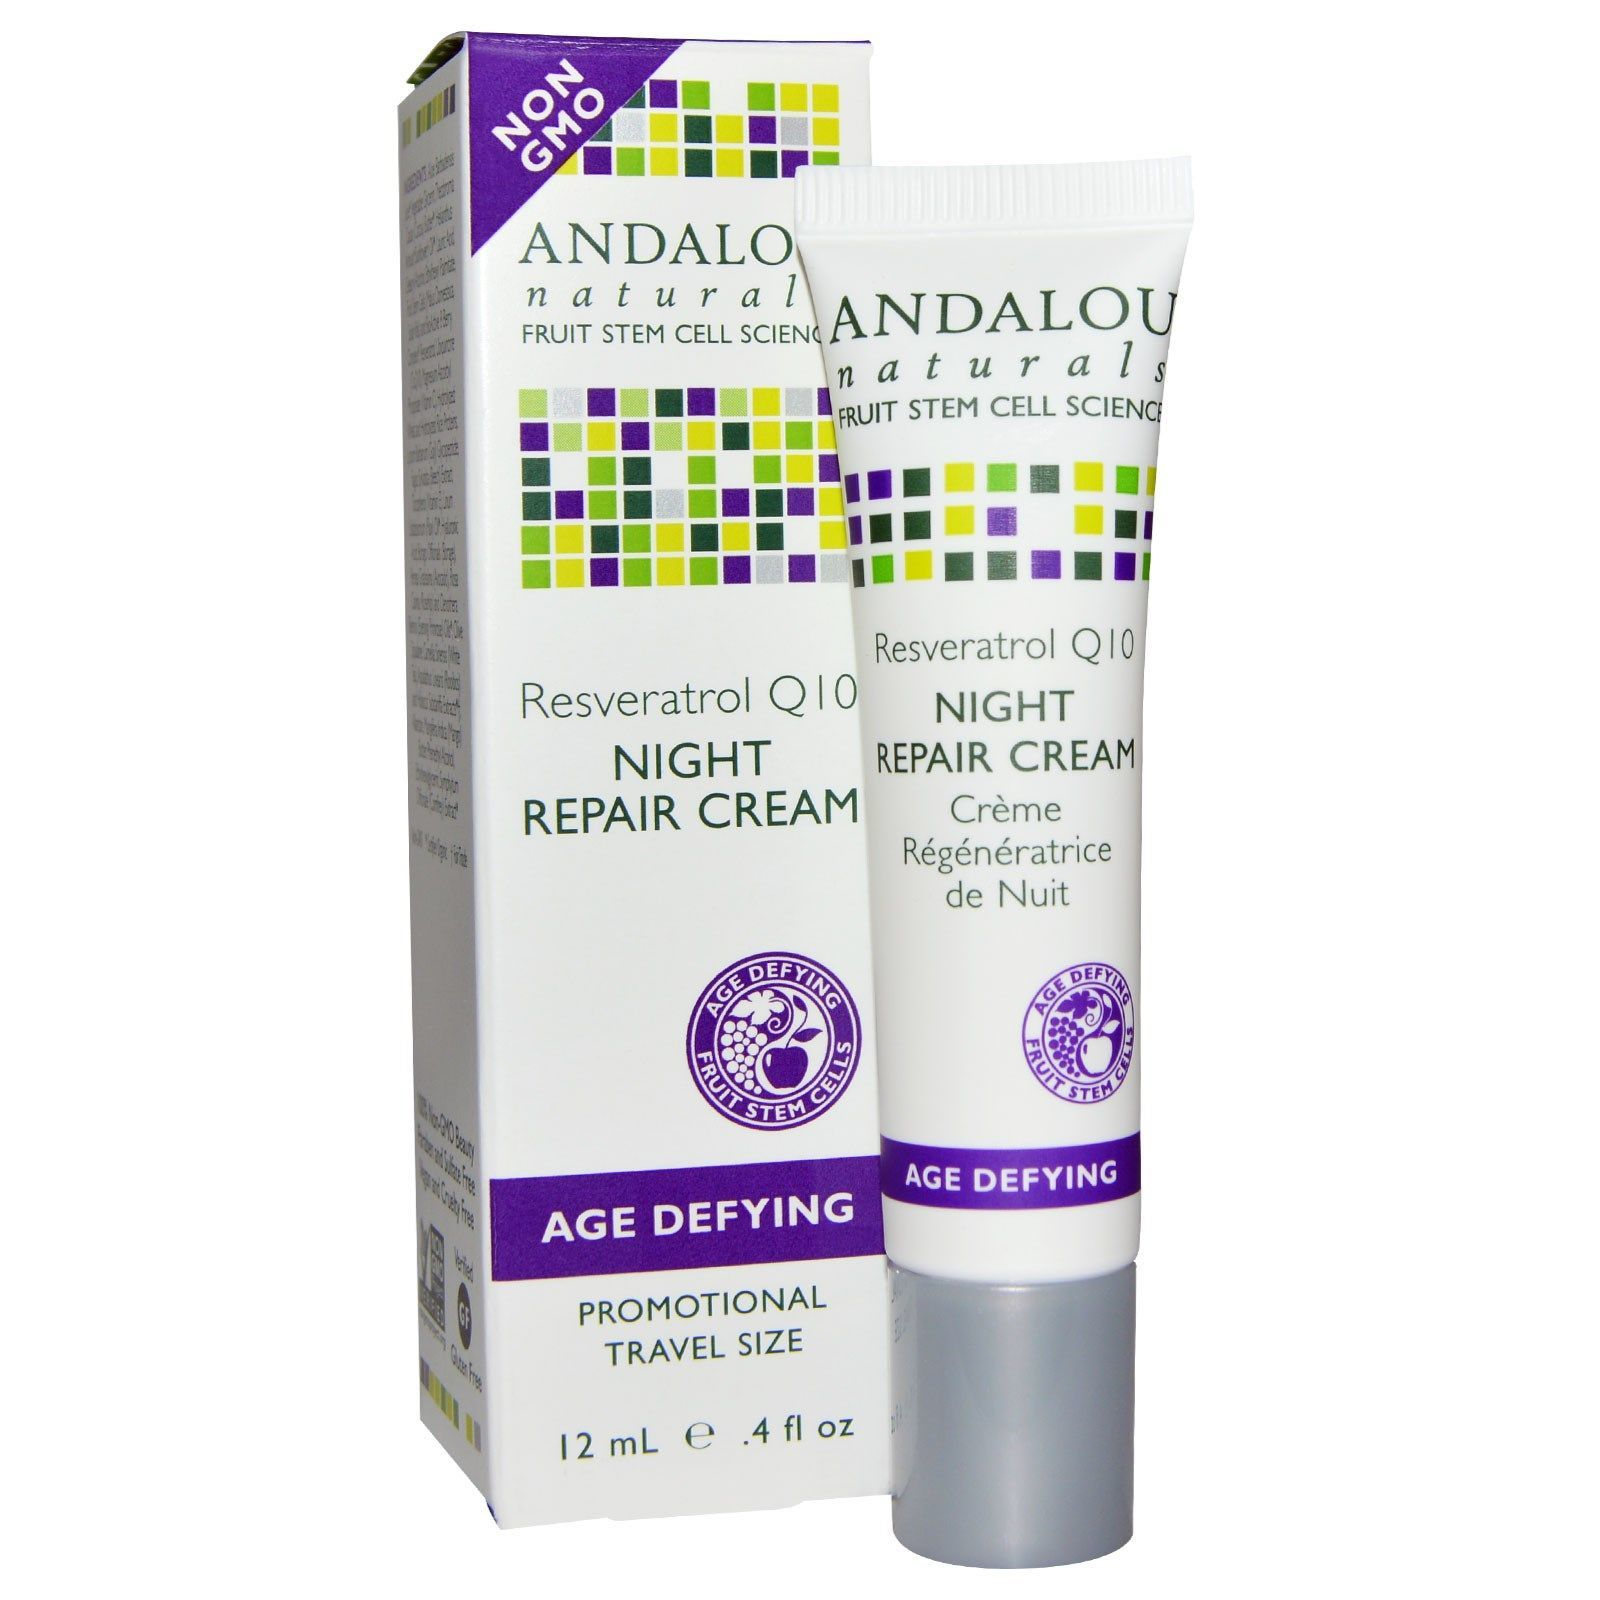 Andalou Naturals, Night Repair Cream, Resveratrol Q10